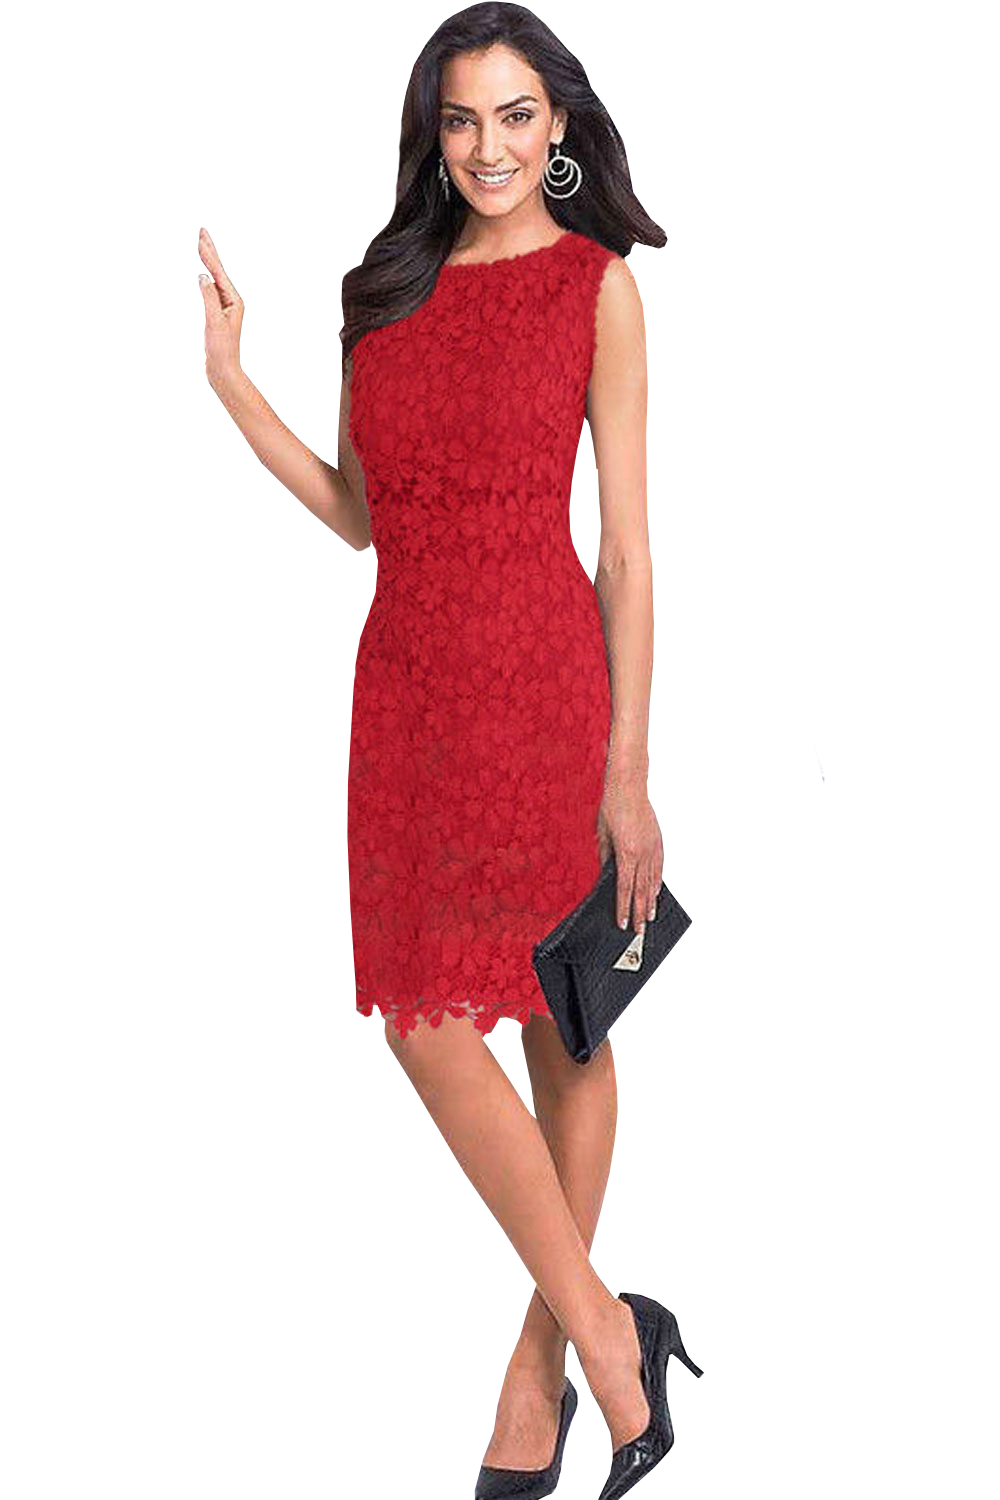 463e42ef979 WOMENS SUMMER LACE SLEEVELESS PENCIL STYLE DRESS RED – Unomatch Shop